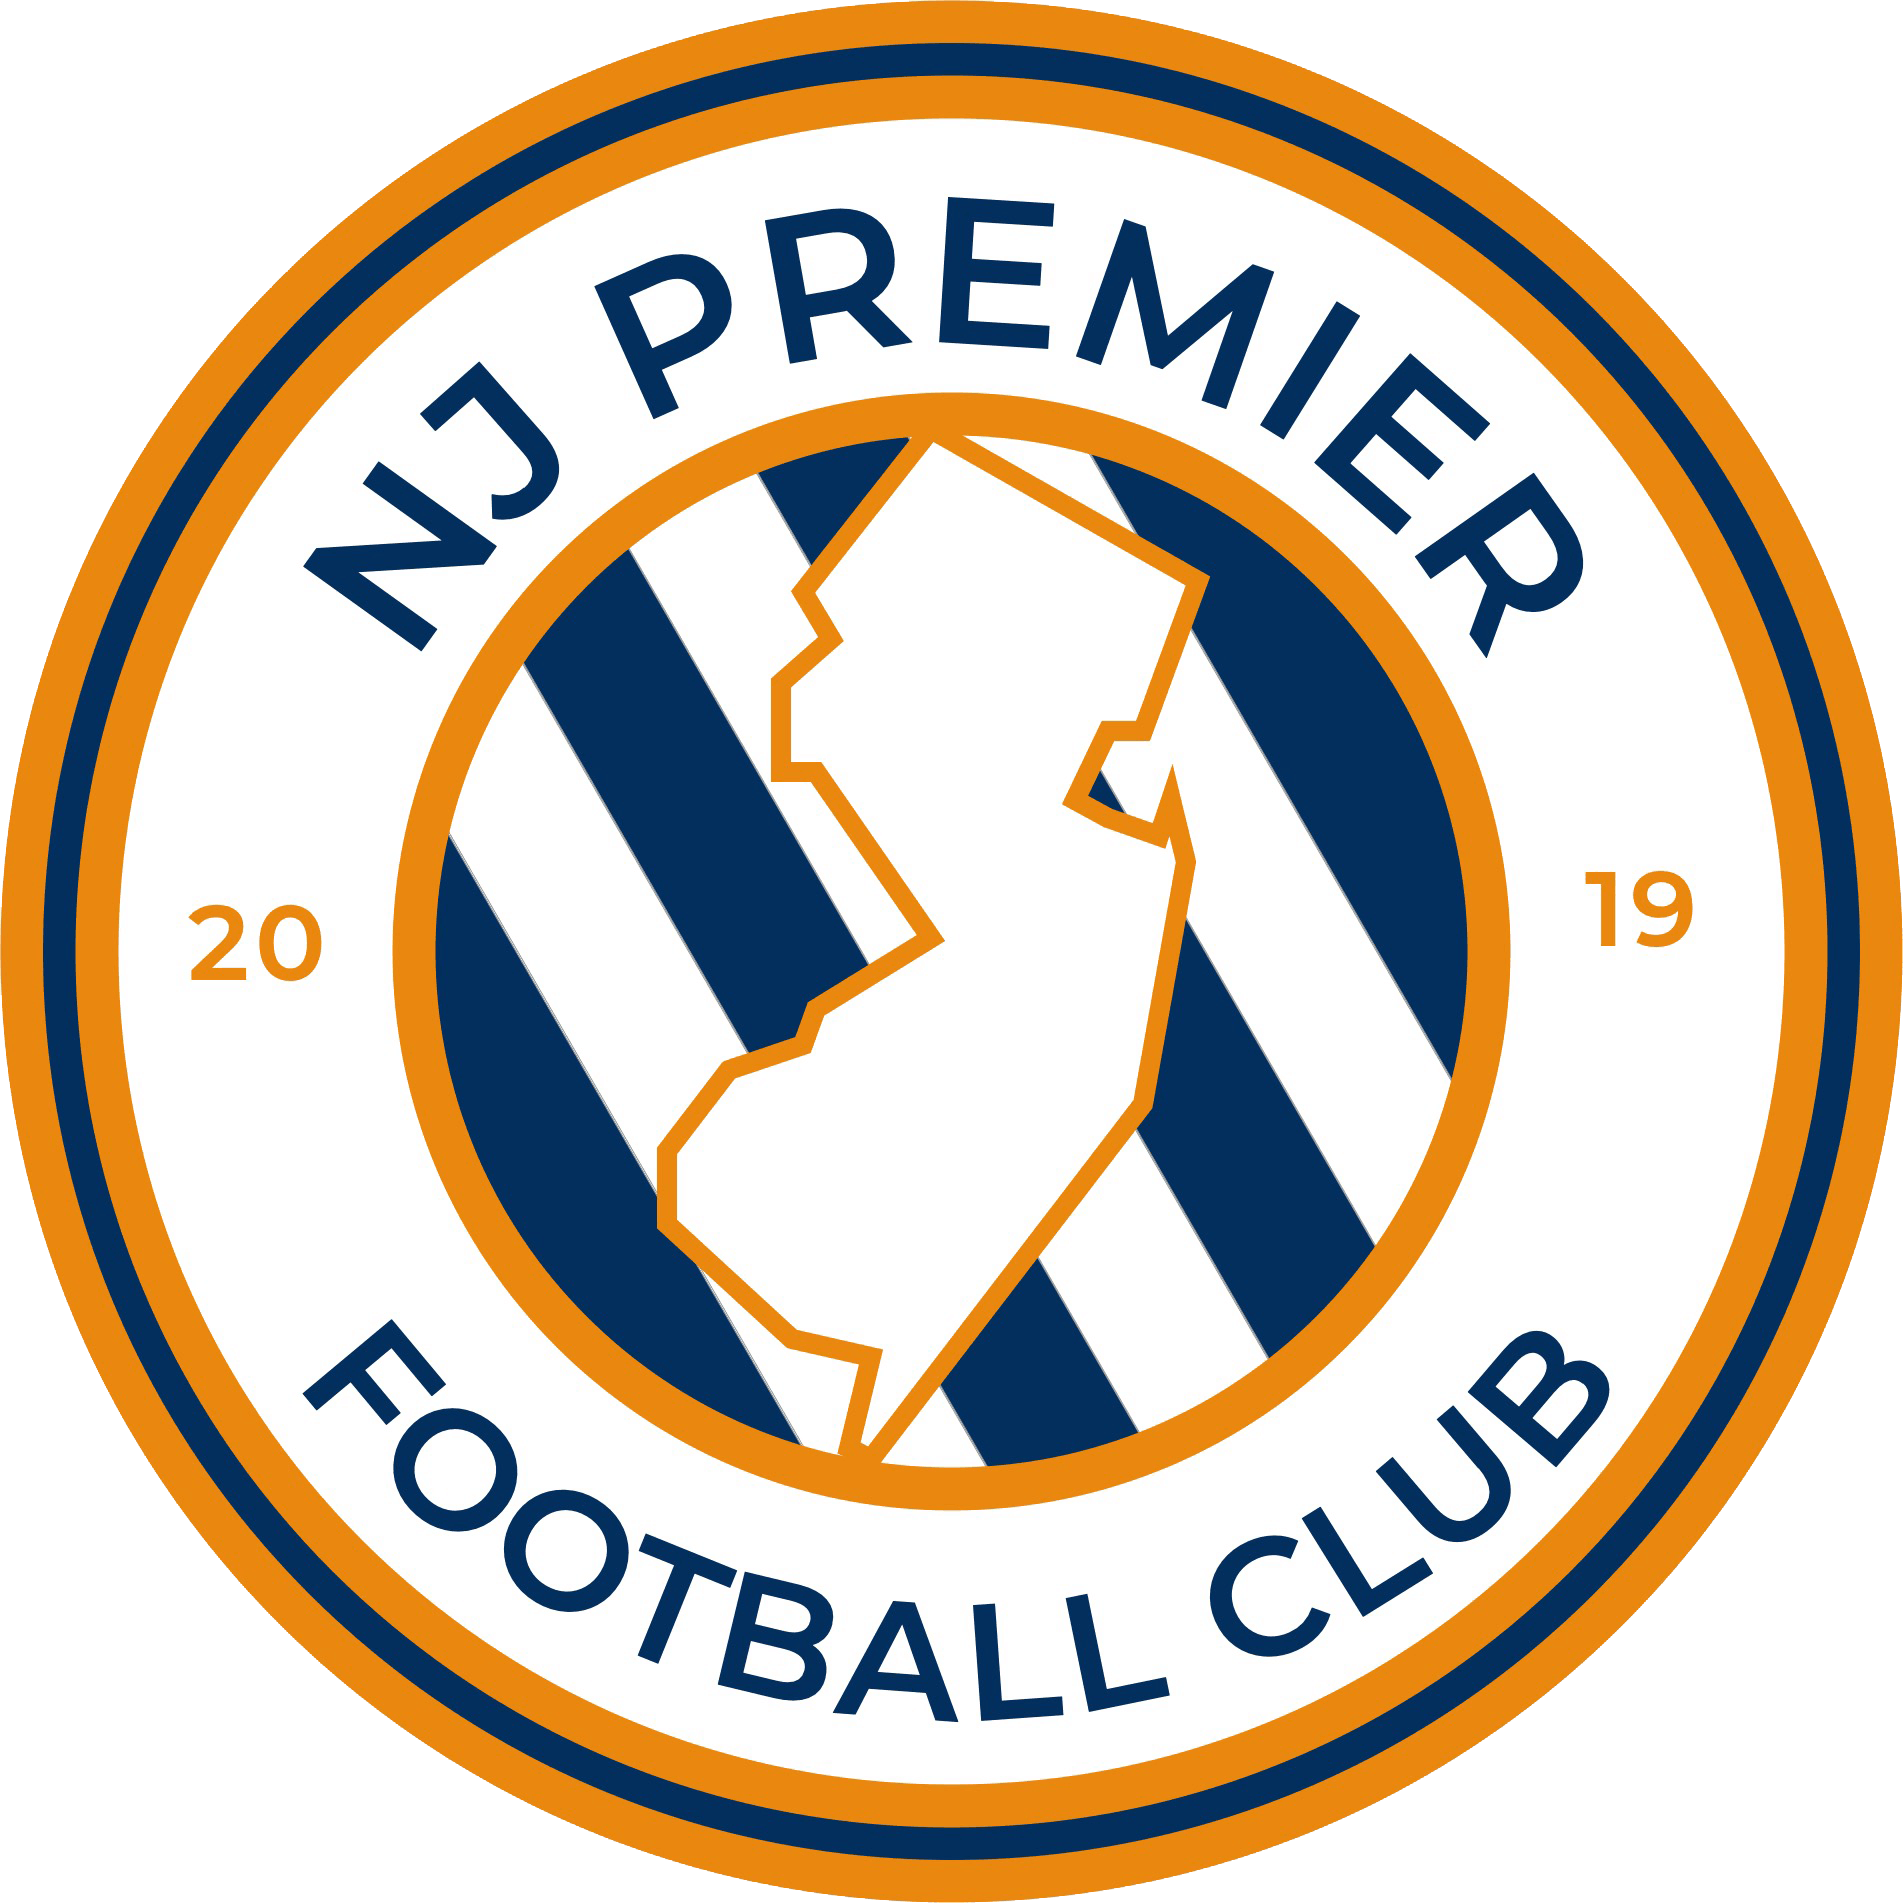 NJ Premier Football Club